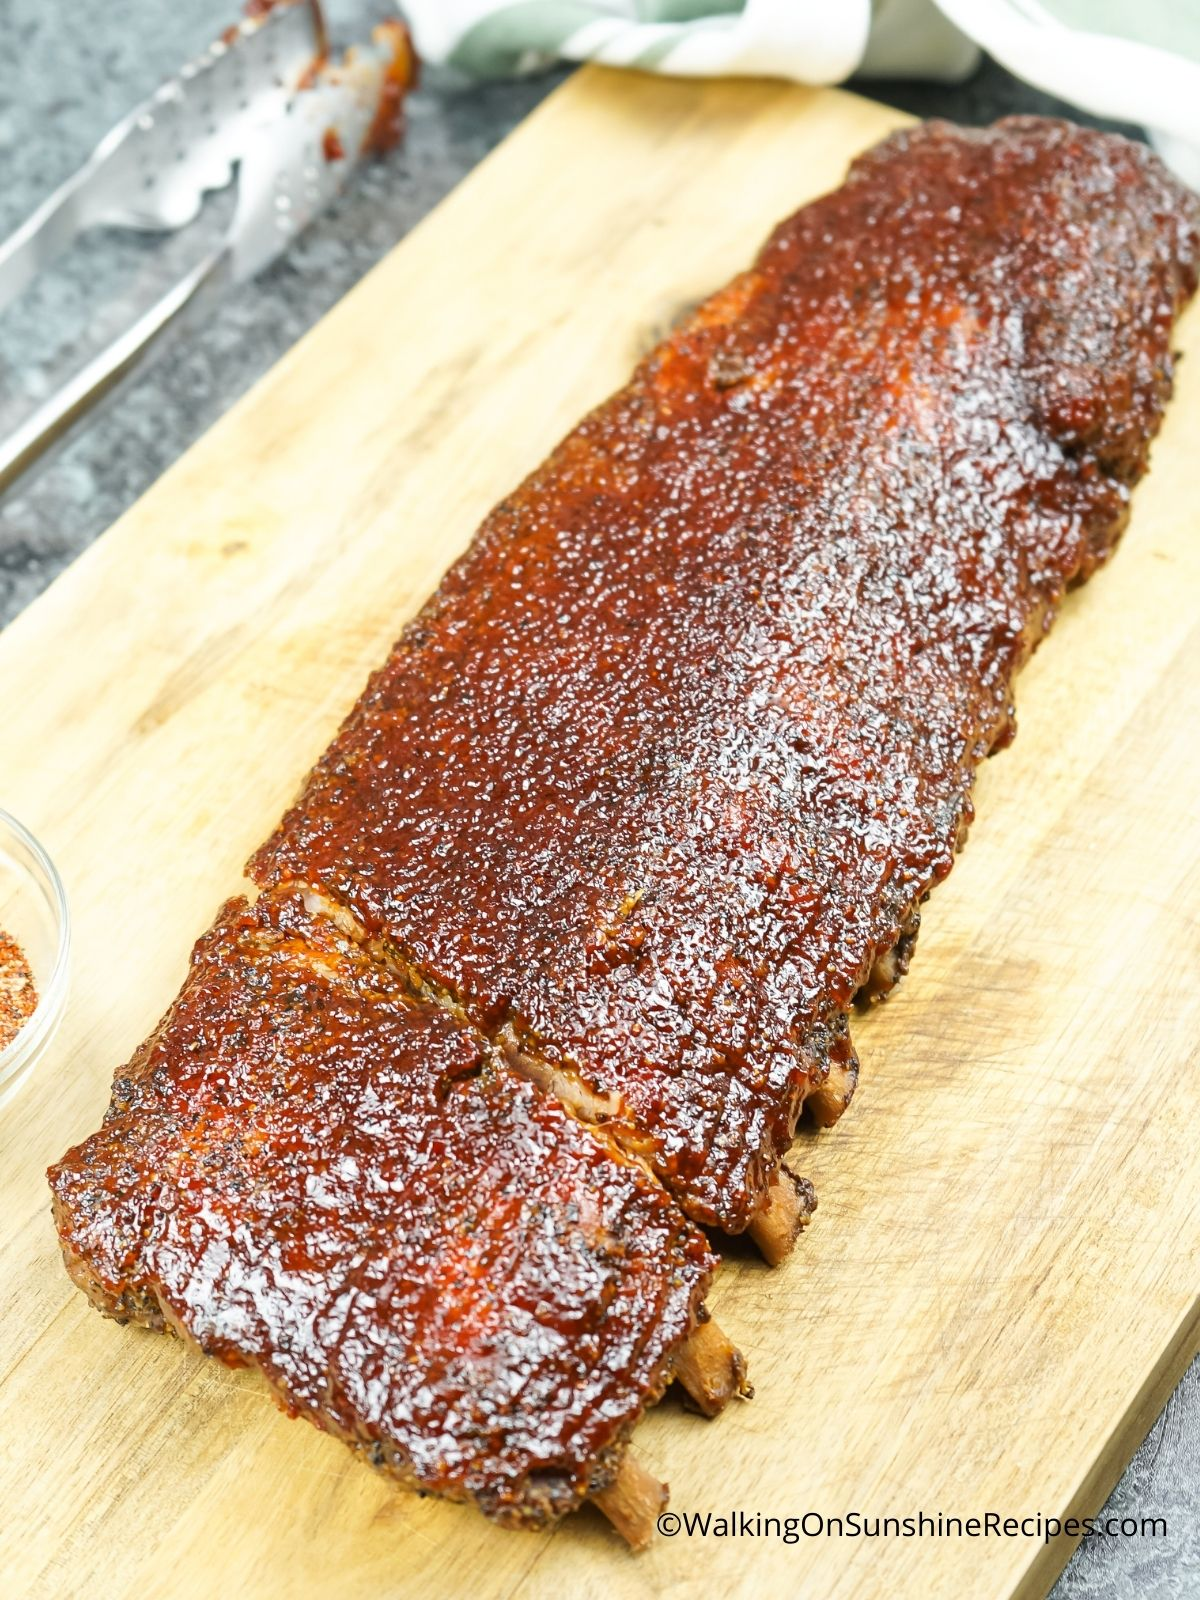 Oven baked ribs on cutting board